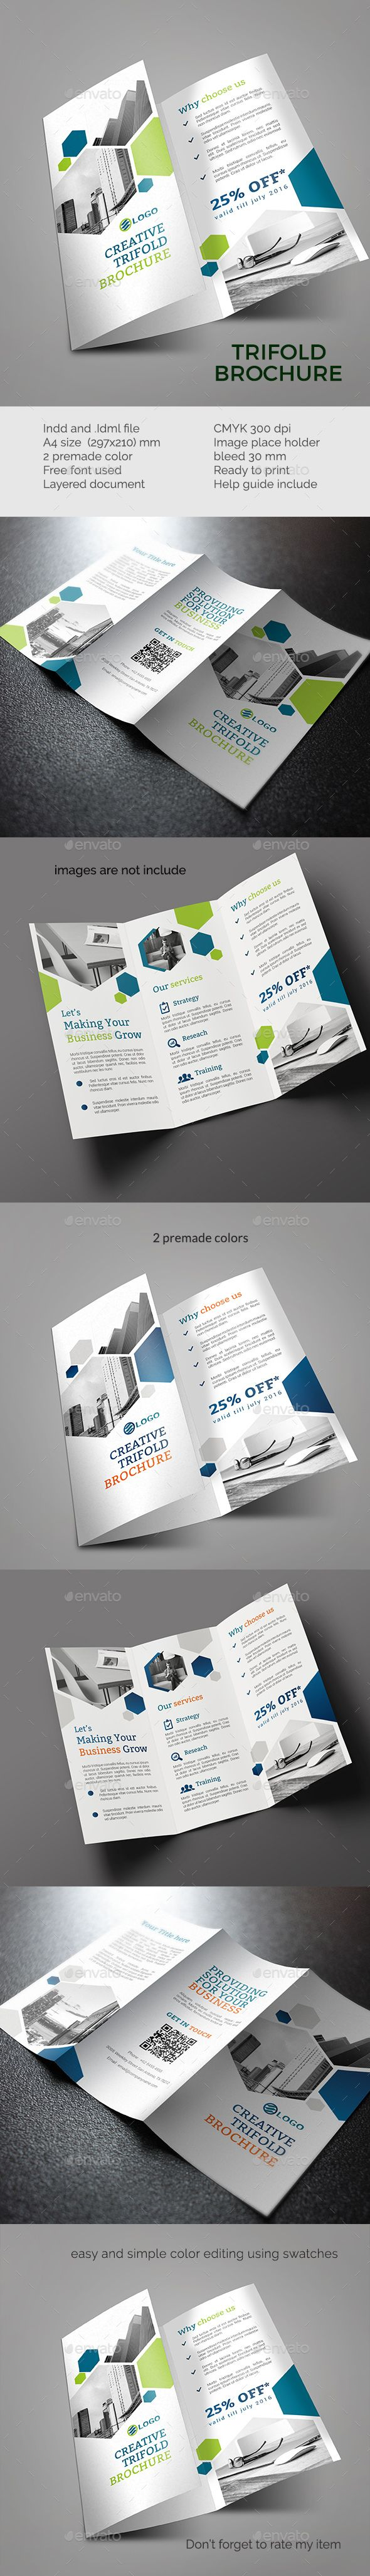 Trifold Brochure Template InDesign INDD. Download here: http://graphicriver.net/item/trifold-template-vol-2/16583153?ref=ksioks